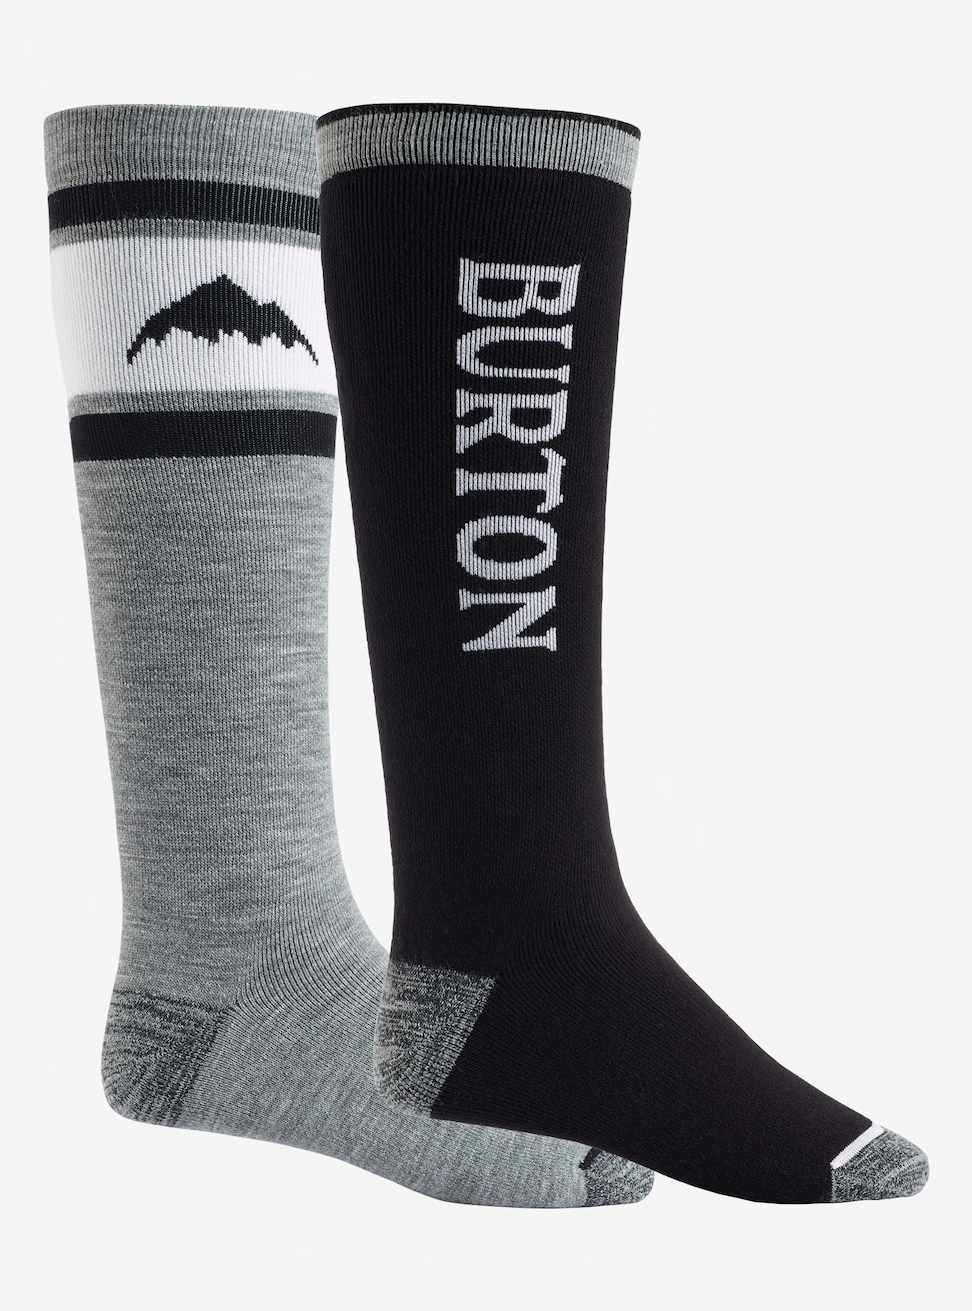 2019 Burton (2 Pack) Weekend Midweight Sock - Black